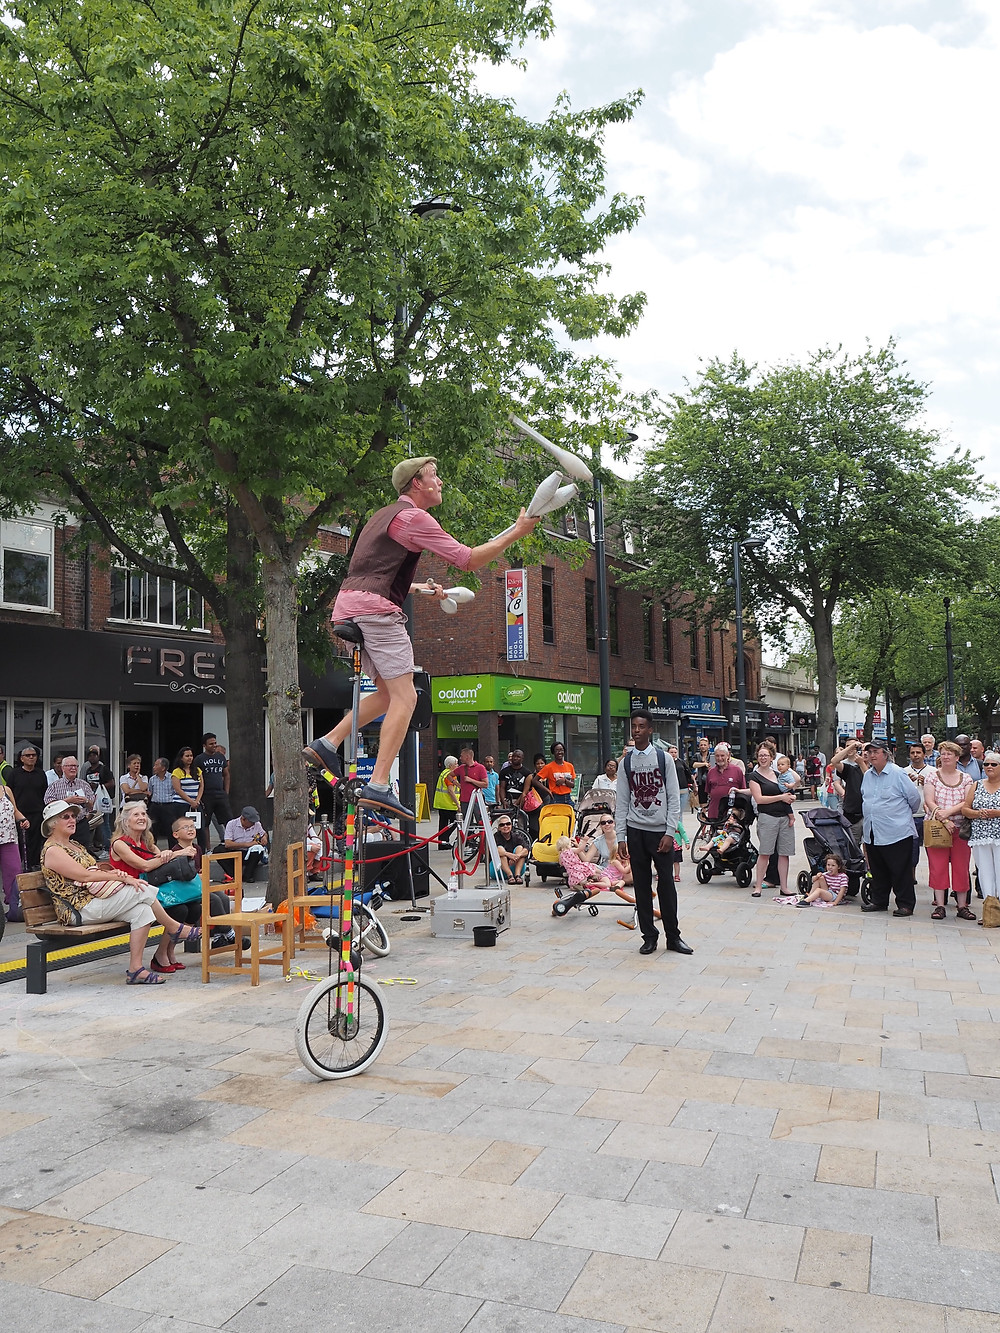 Circus entertainers for hire in UK